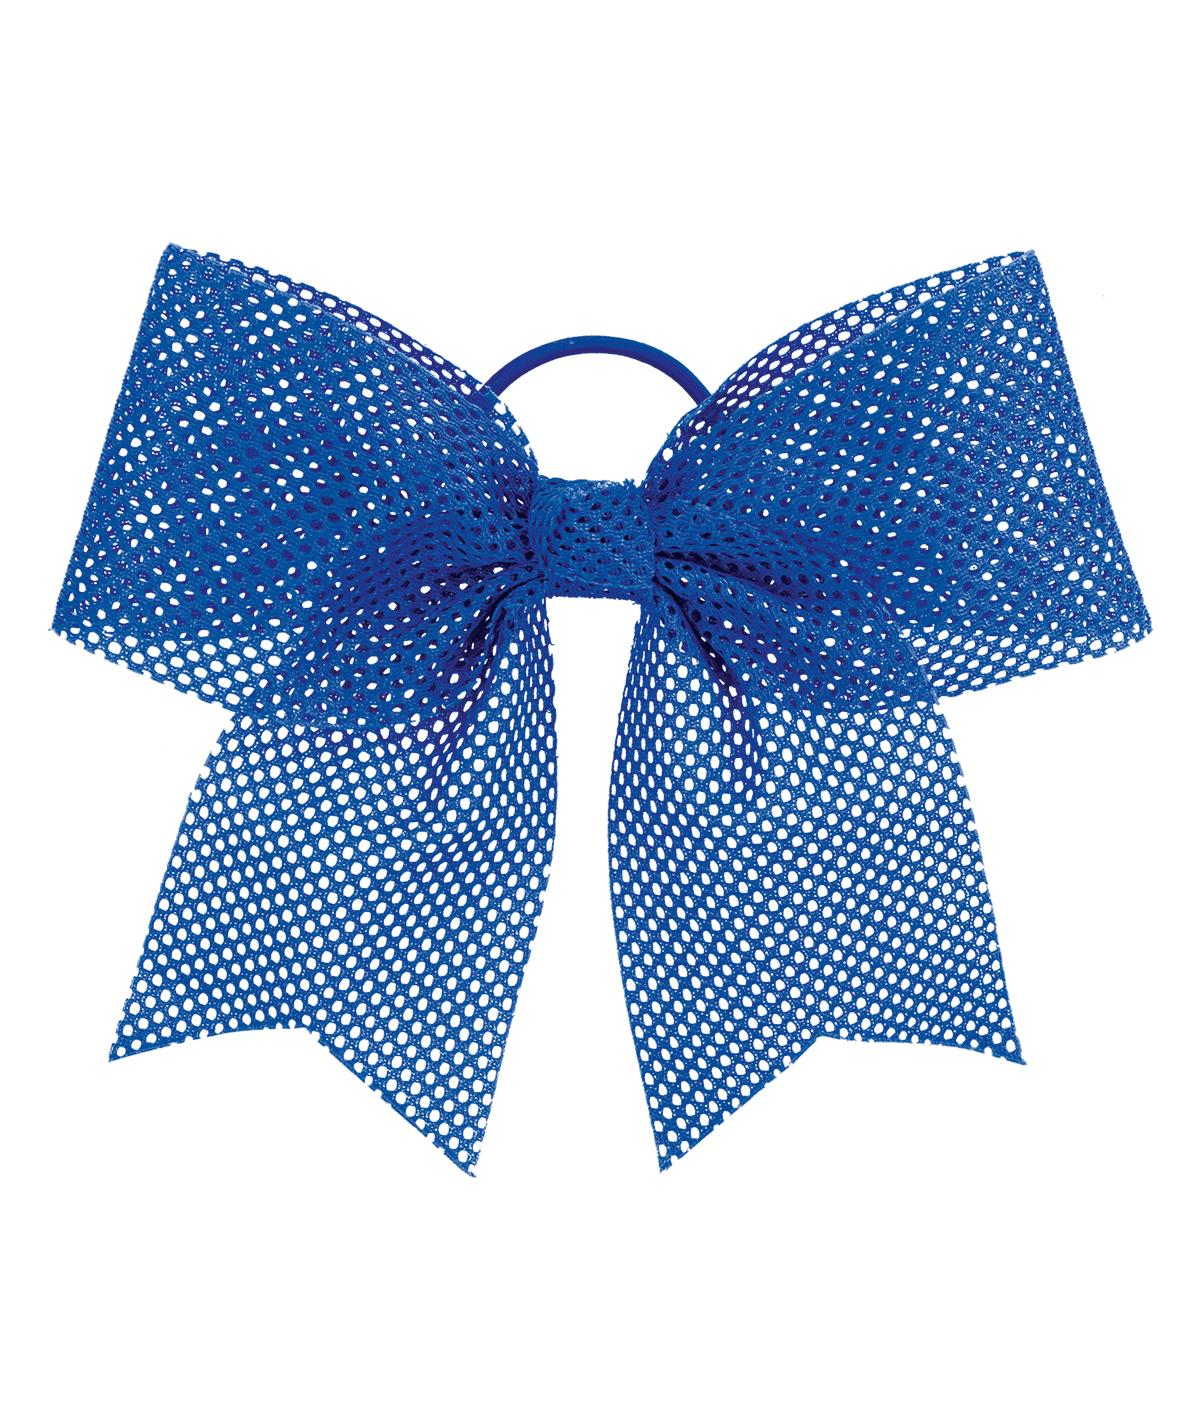 CHASSE MESH PERFORMANCE HAIR BOW